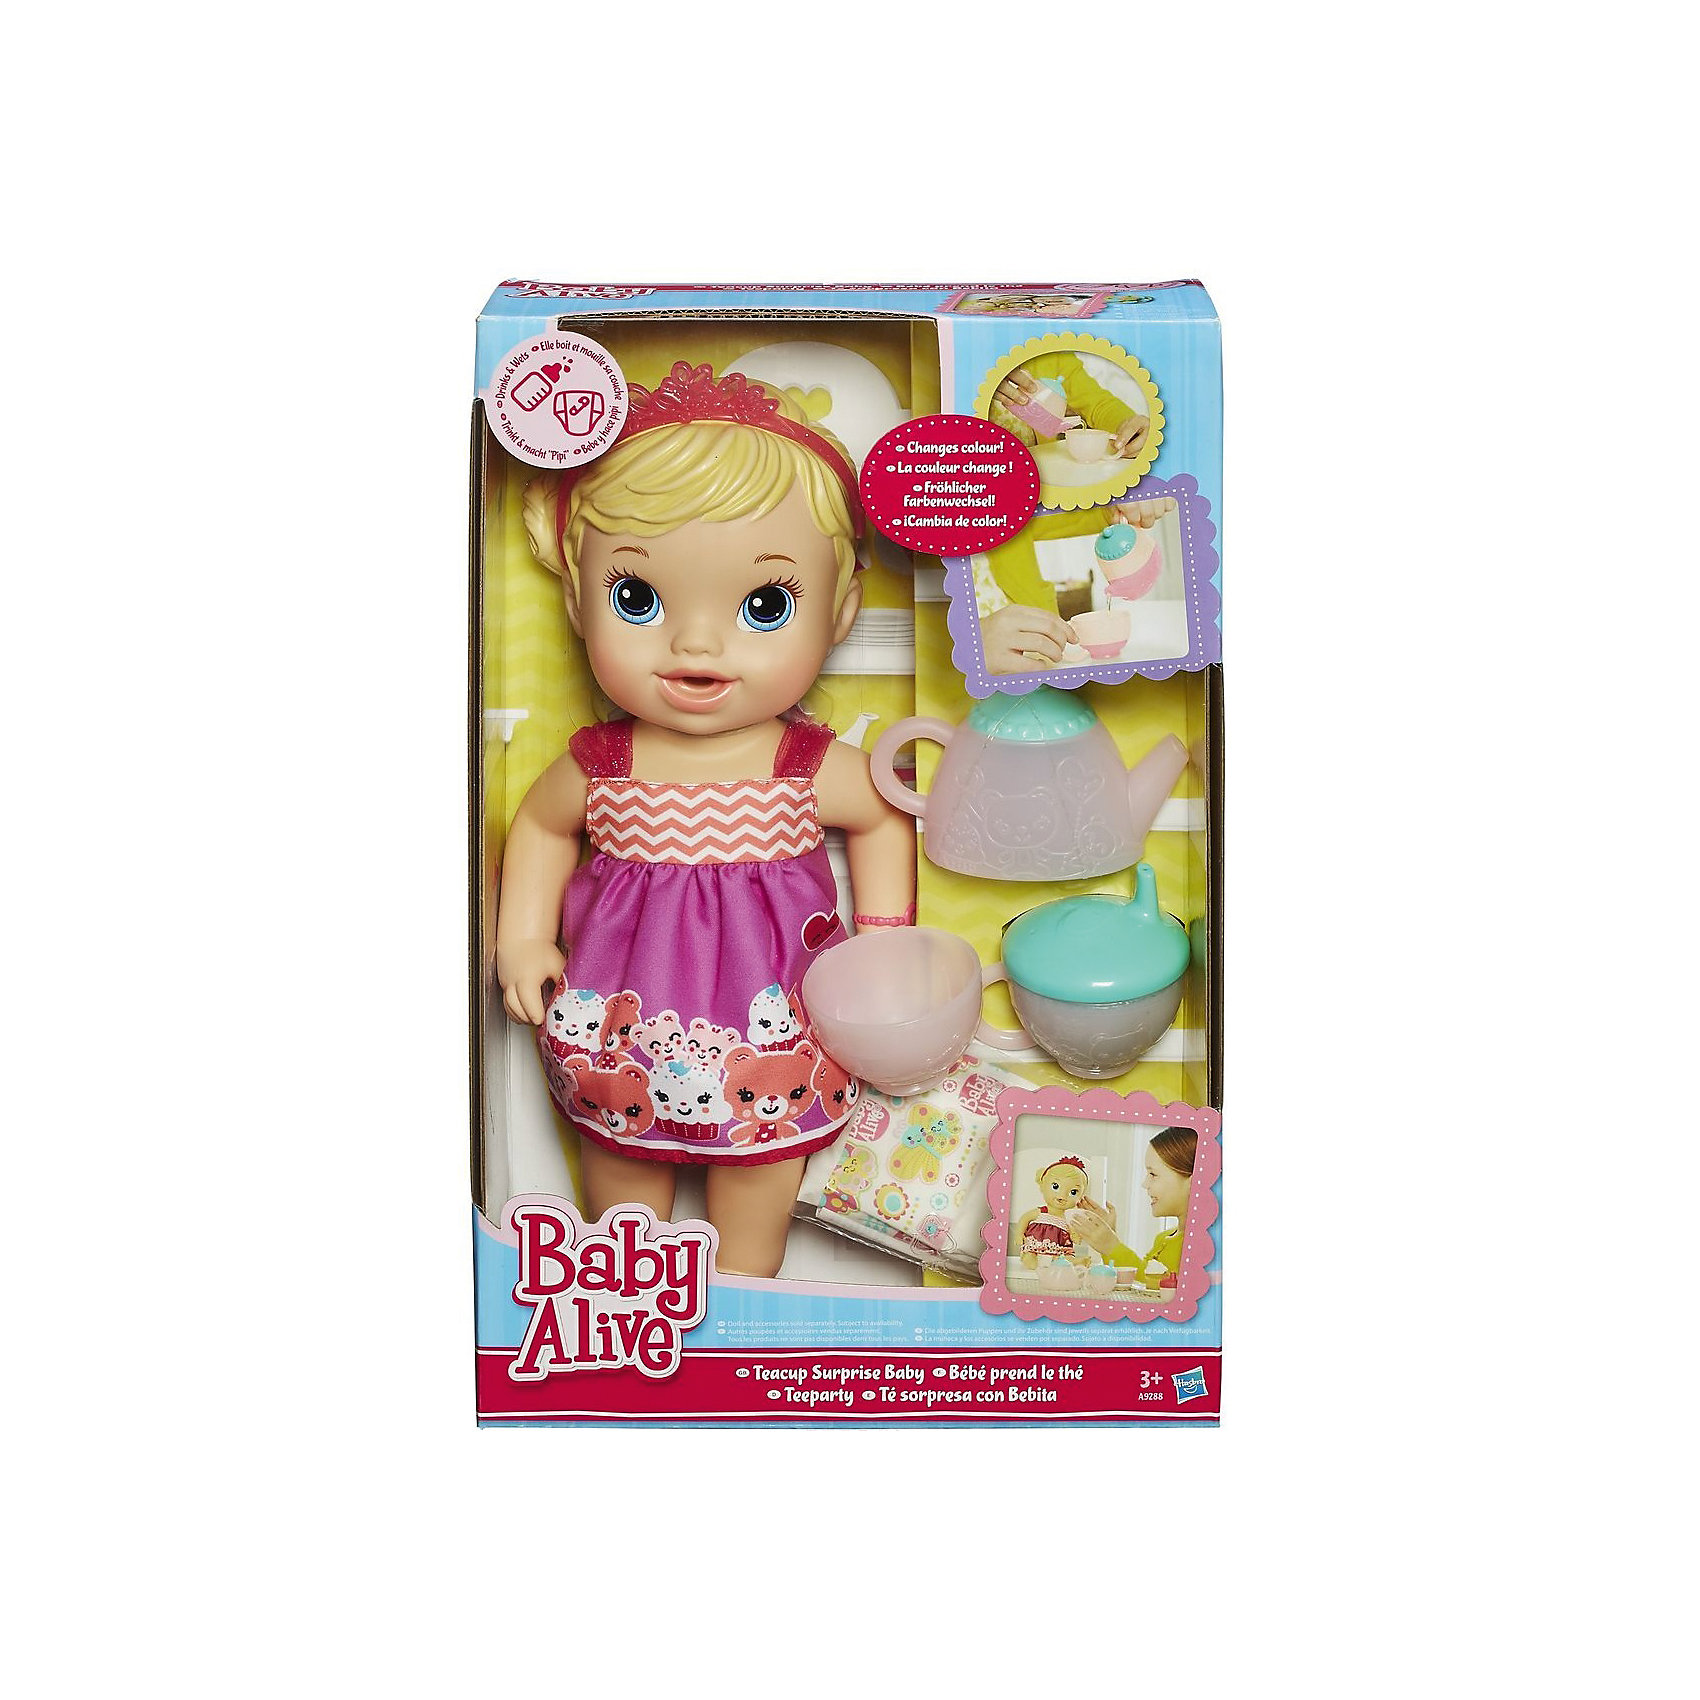 Hasbro Кукла Гостеприимная малютка, BABY ALIVE keyshare dual bulb night vision led light kit for remote control drones